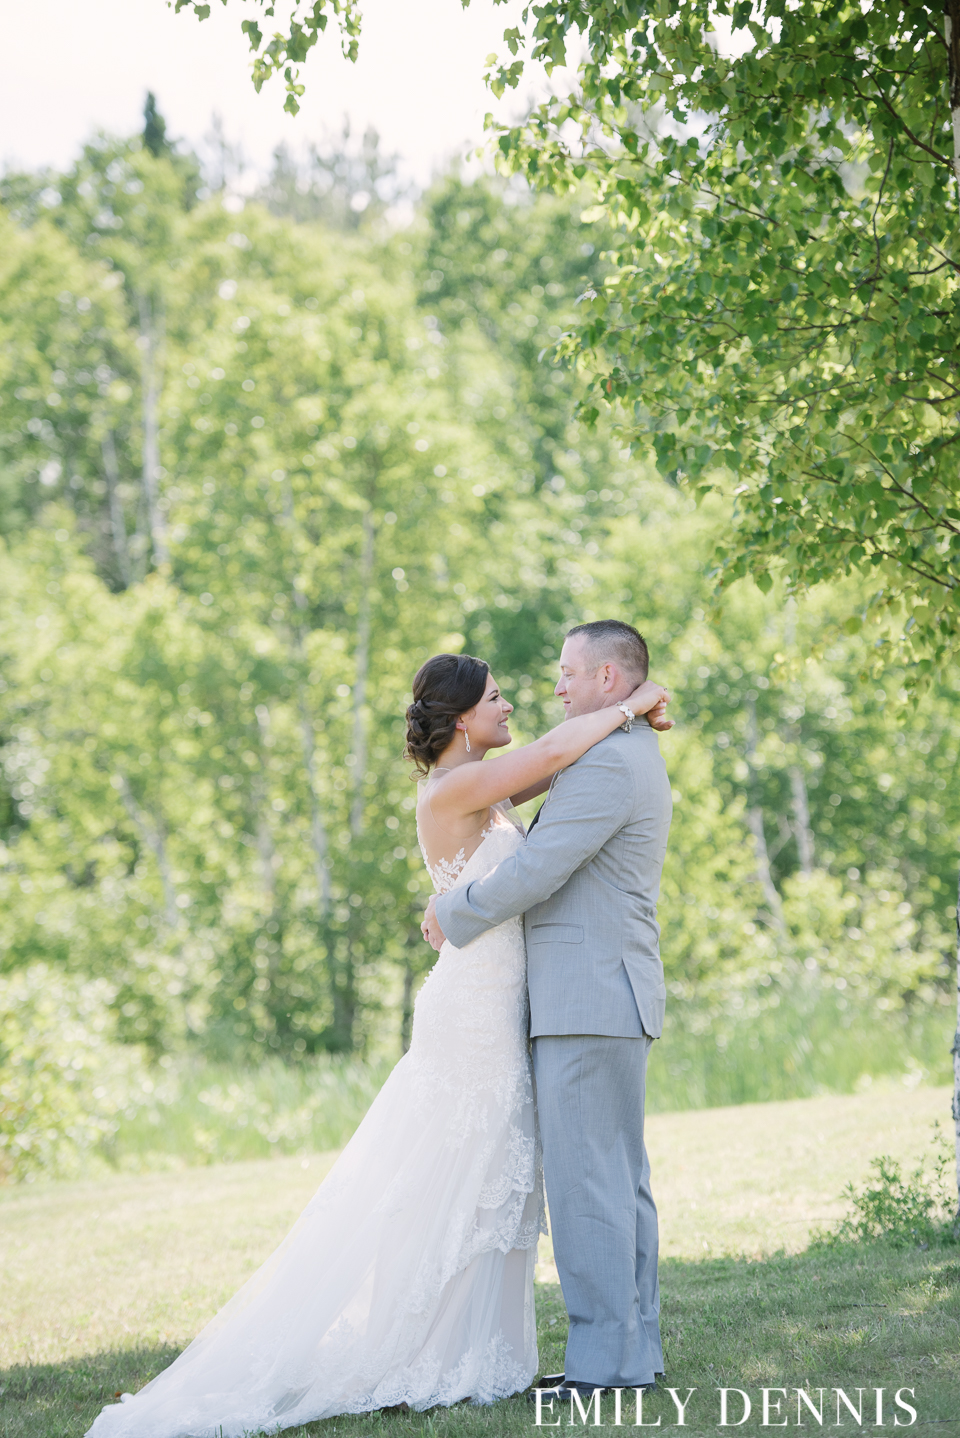 EMILY_DENNIS_PHOTOGRAPHY-36